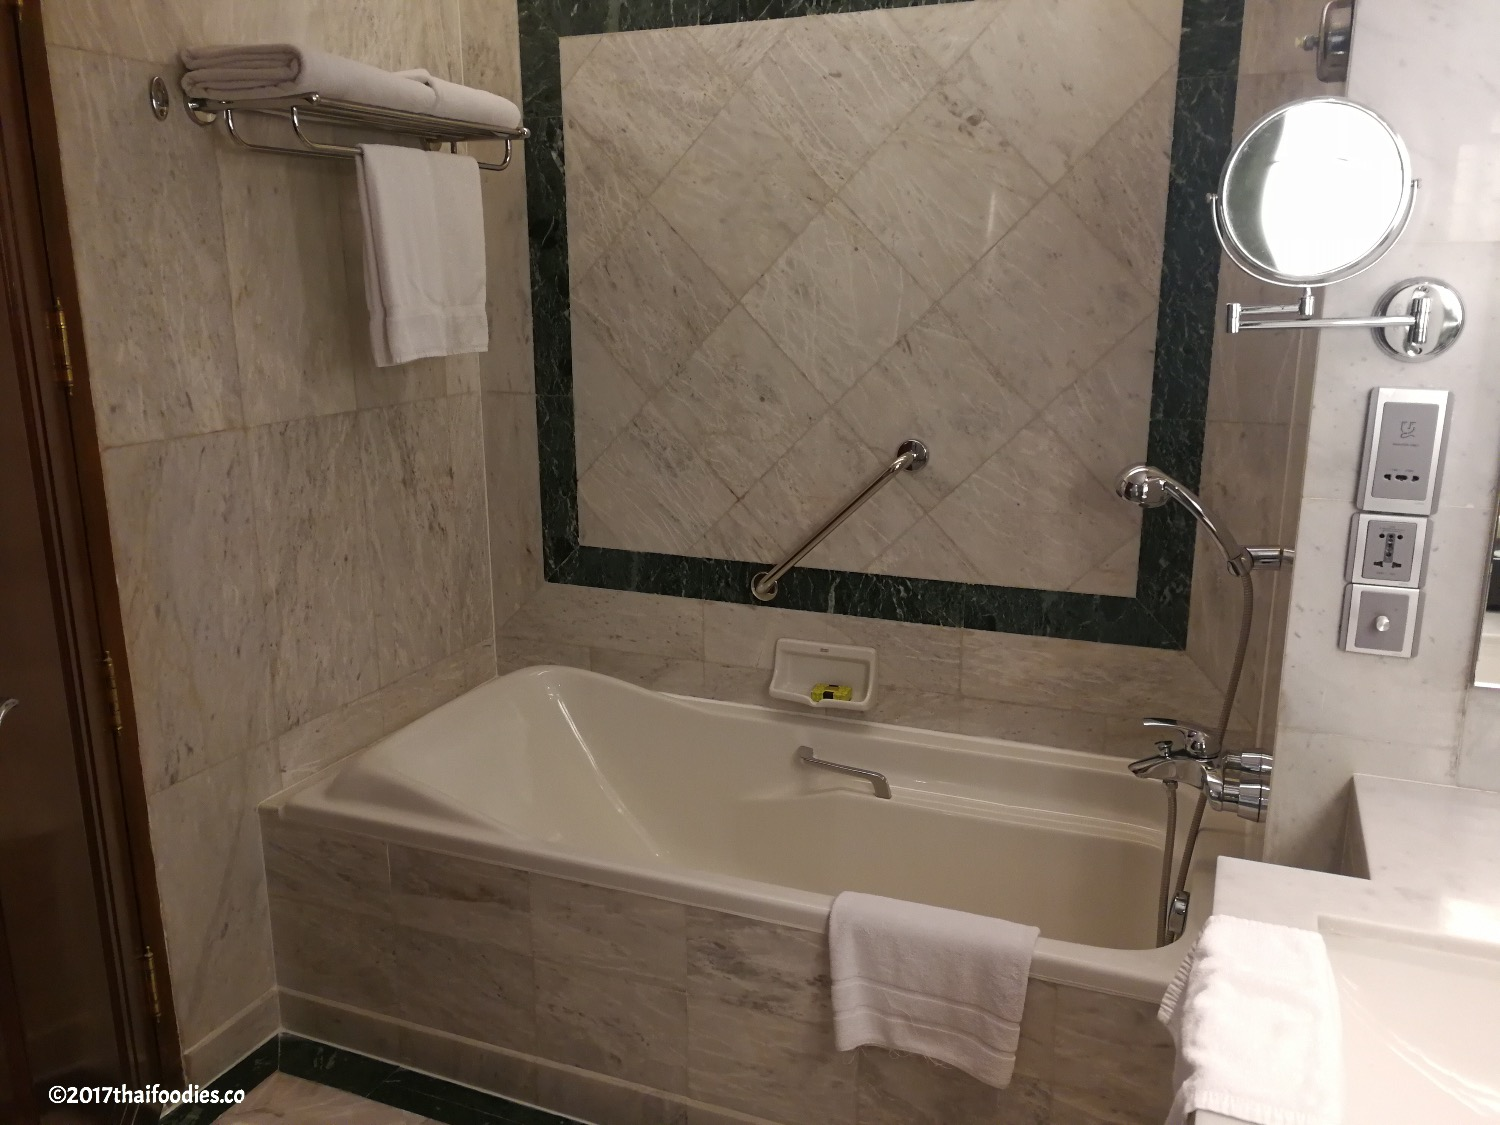 Intercontinental Hotel Review